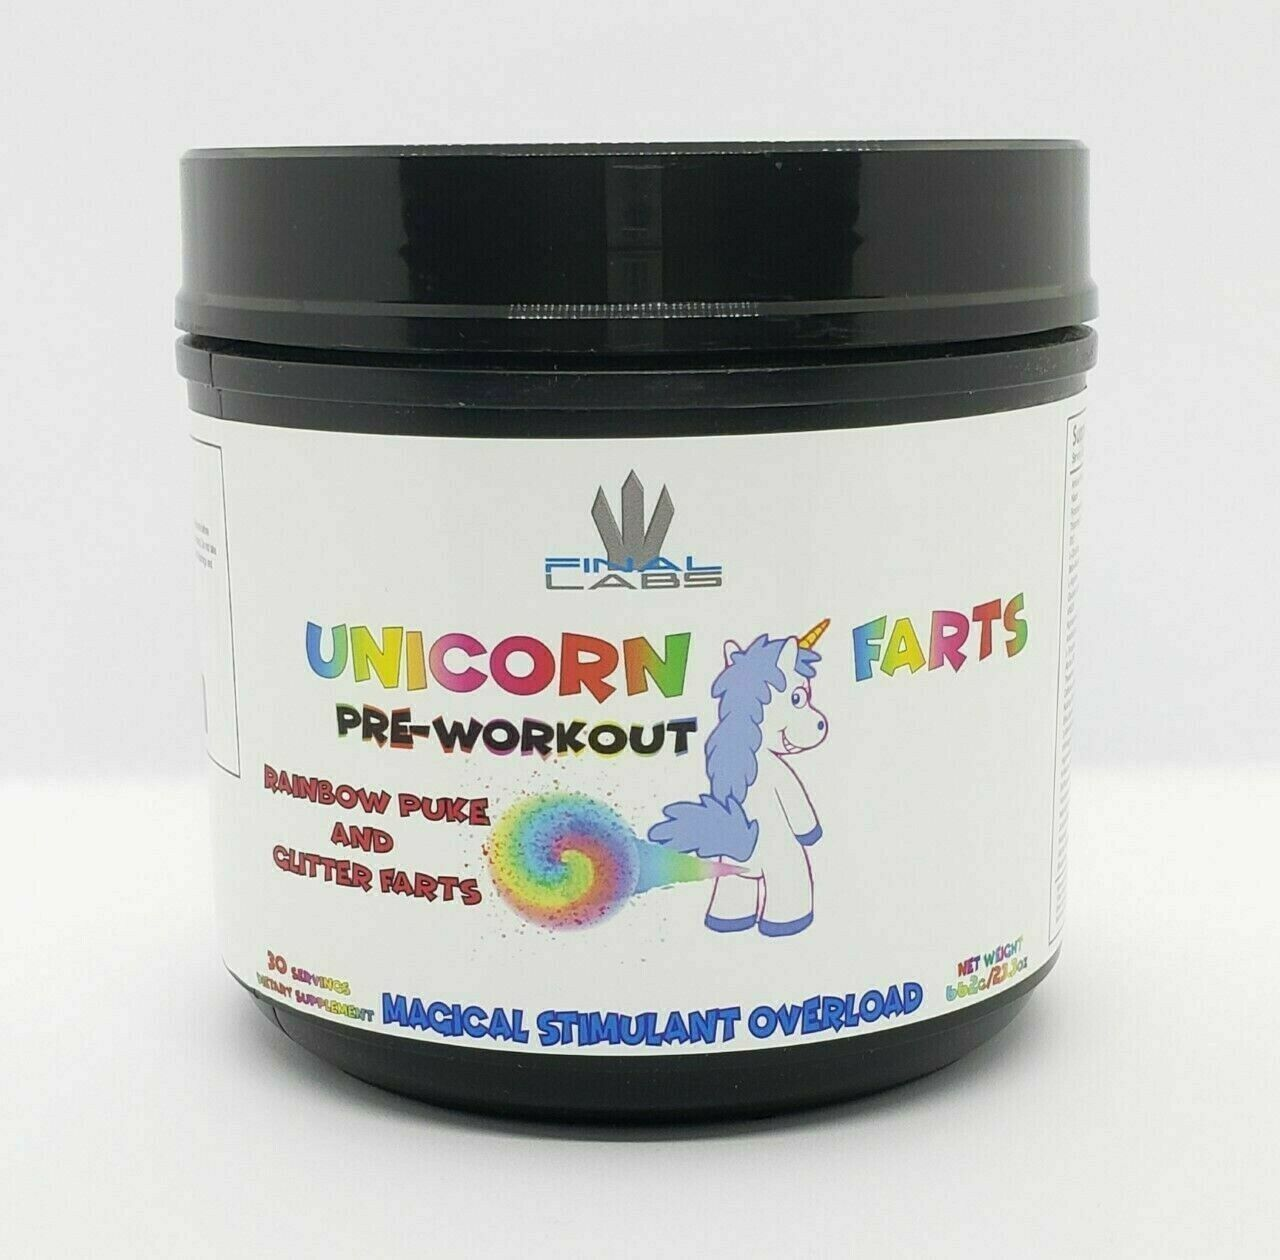 Primary image for Final Labs Unicorn Farts Ultra Premium Pre-Workout, 30-60 Servings, Tutti Frutti